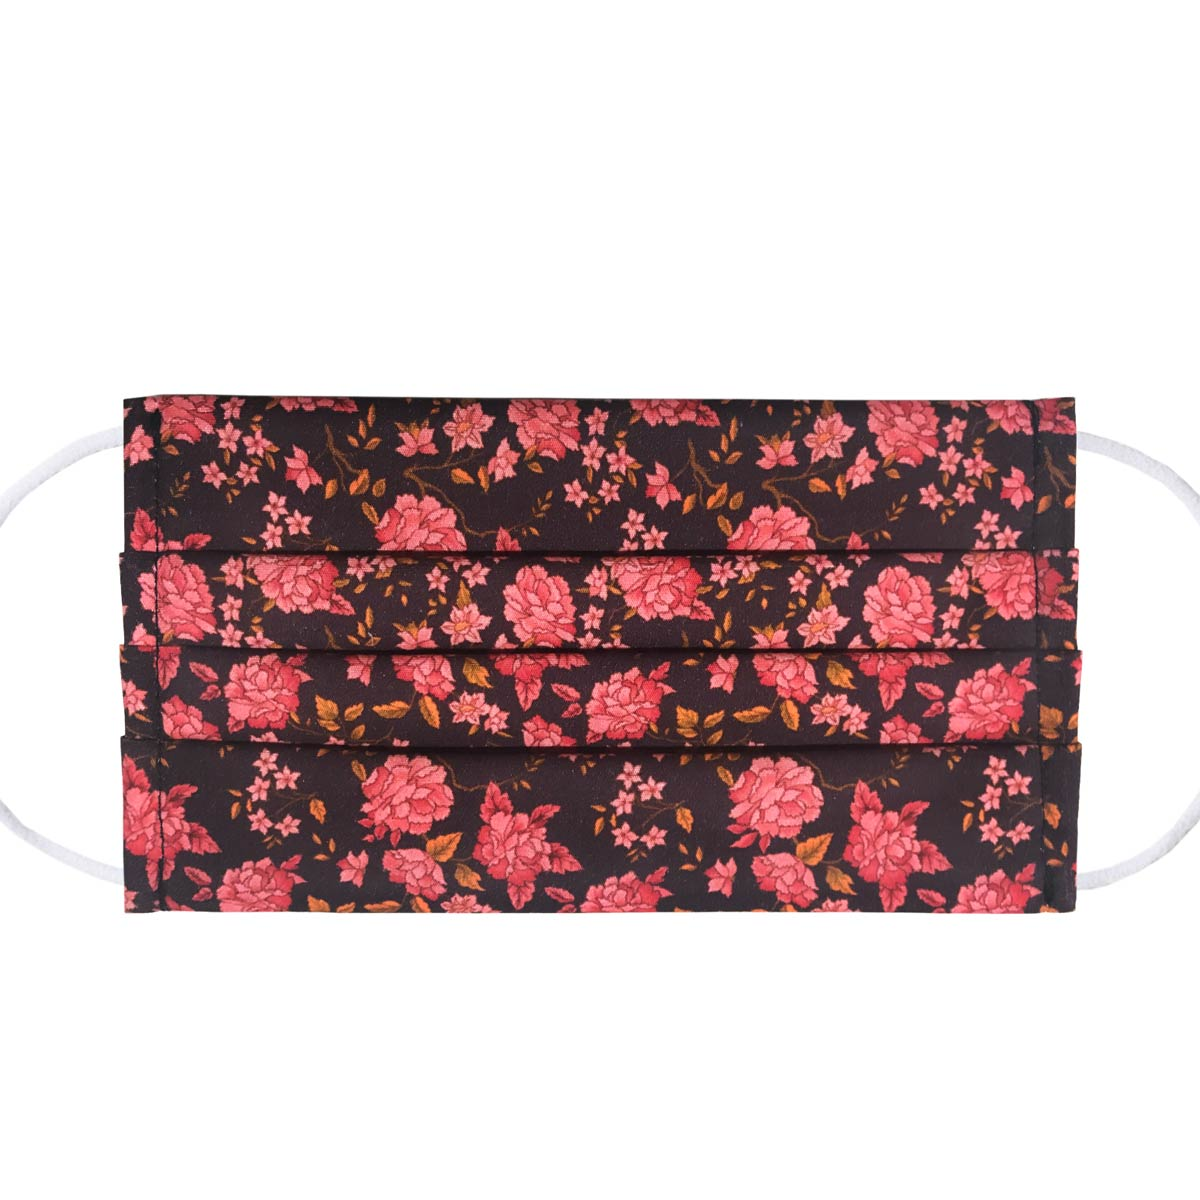 AT-06285-F12-masque-tissu-lavable-roses